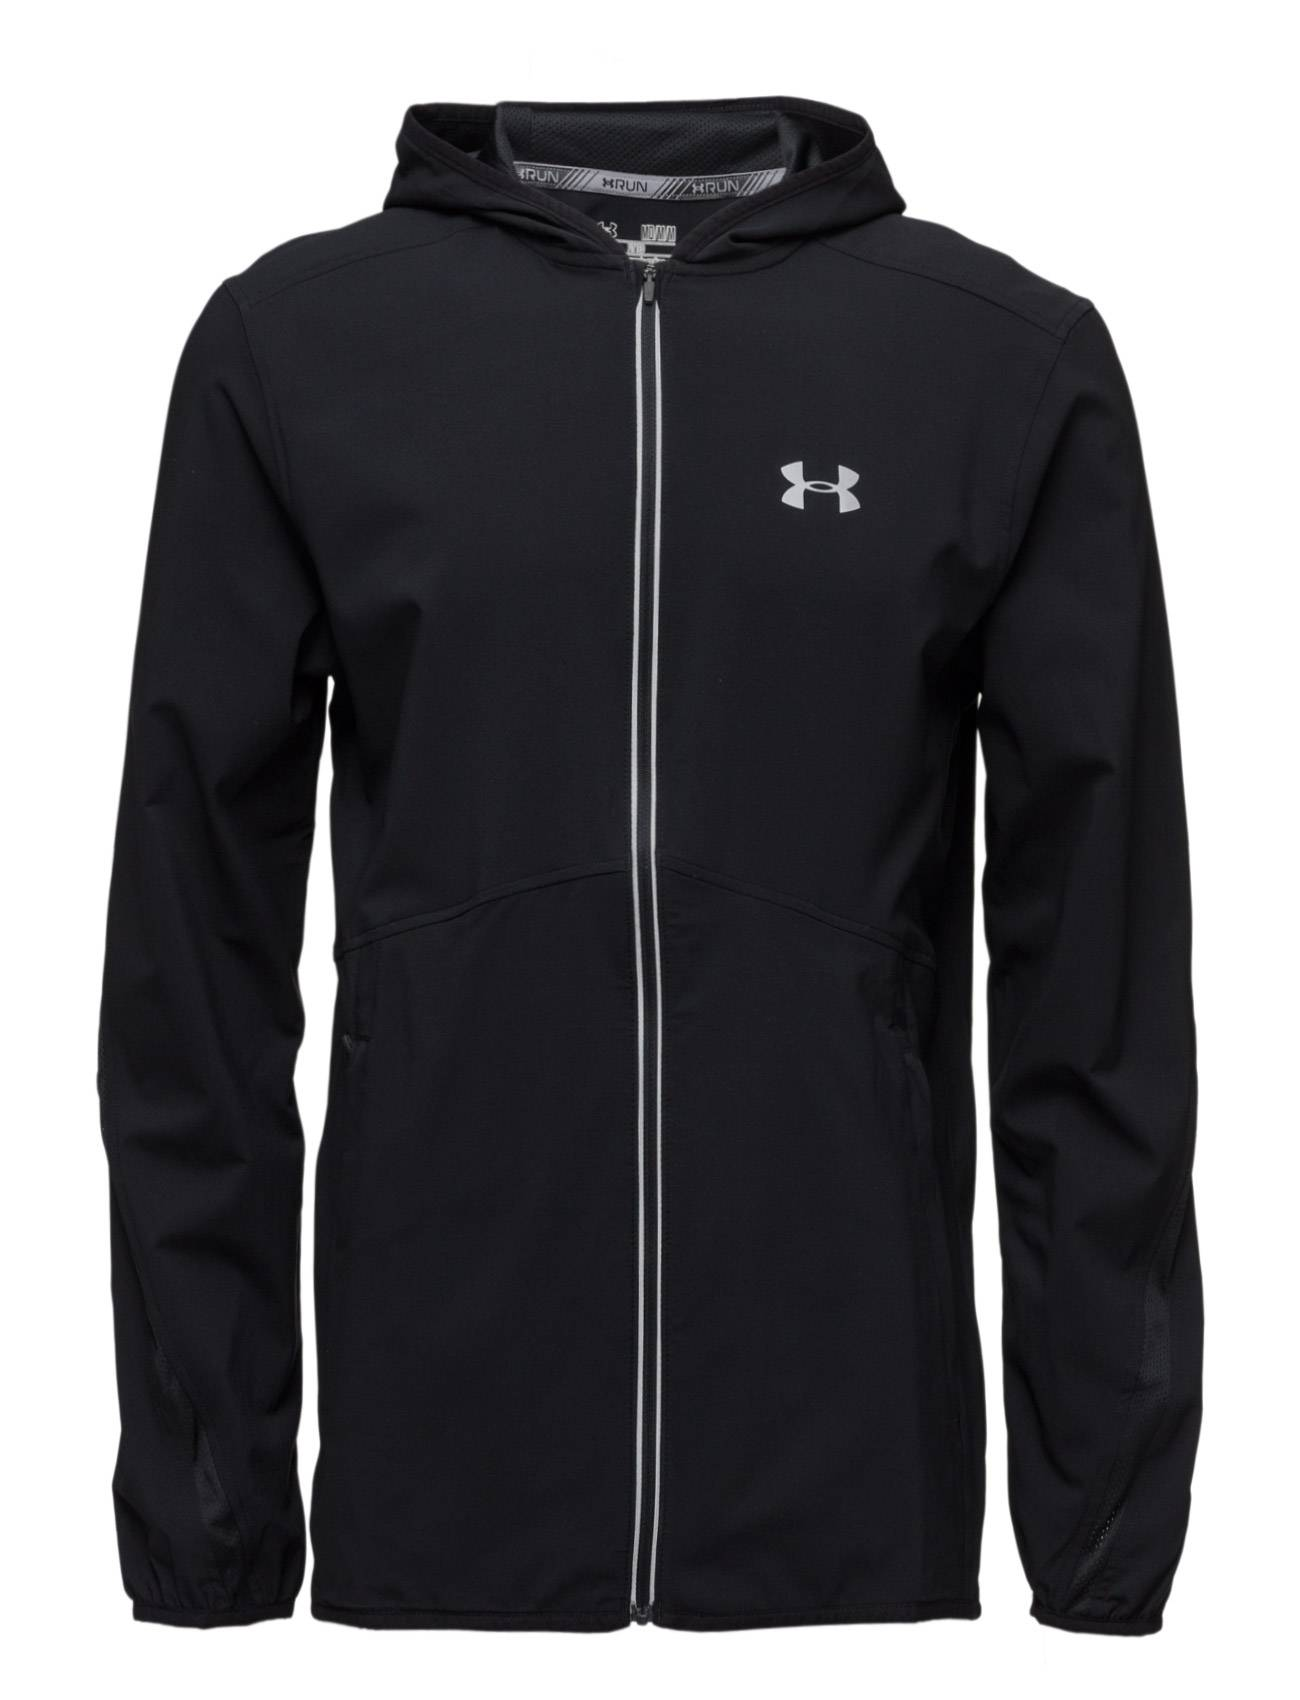 Under Armour Run True Sw Jacket